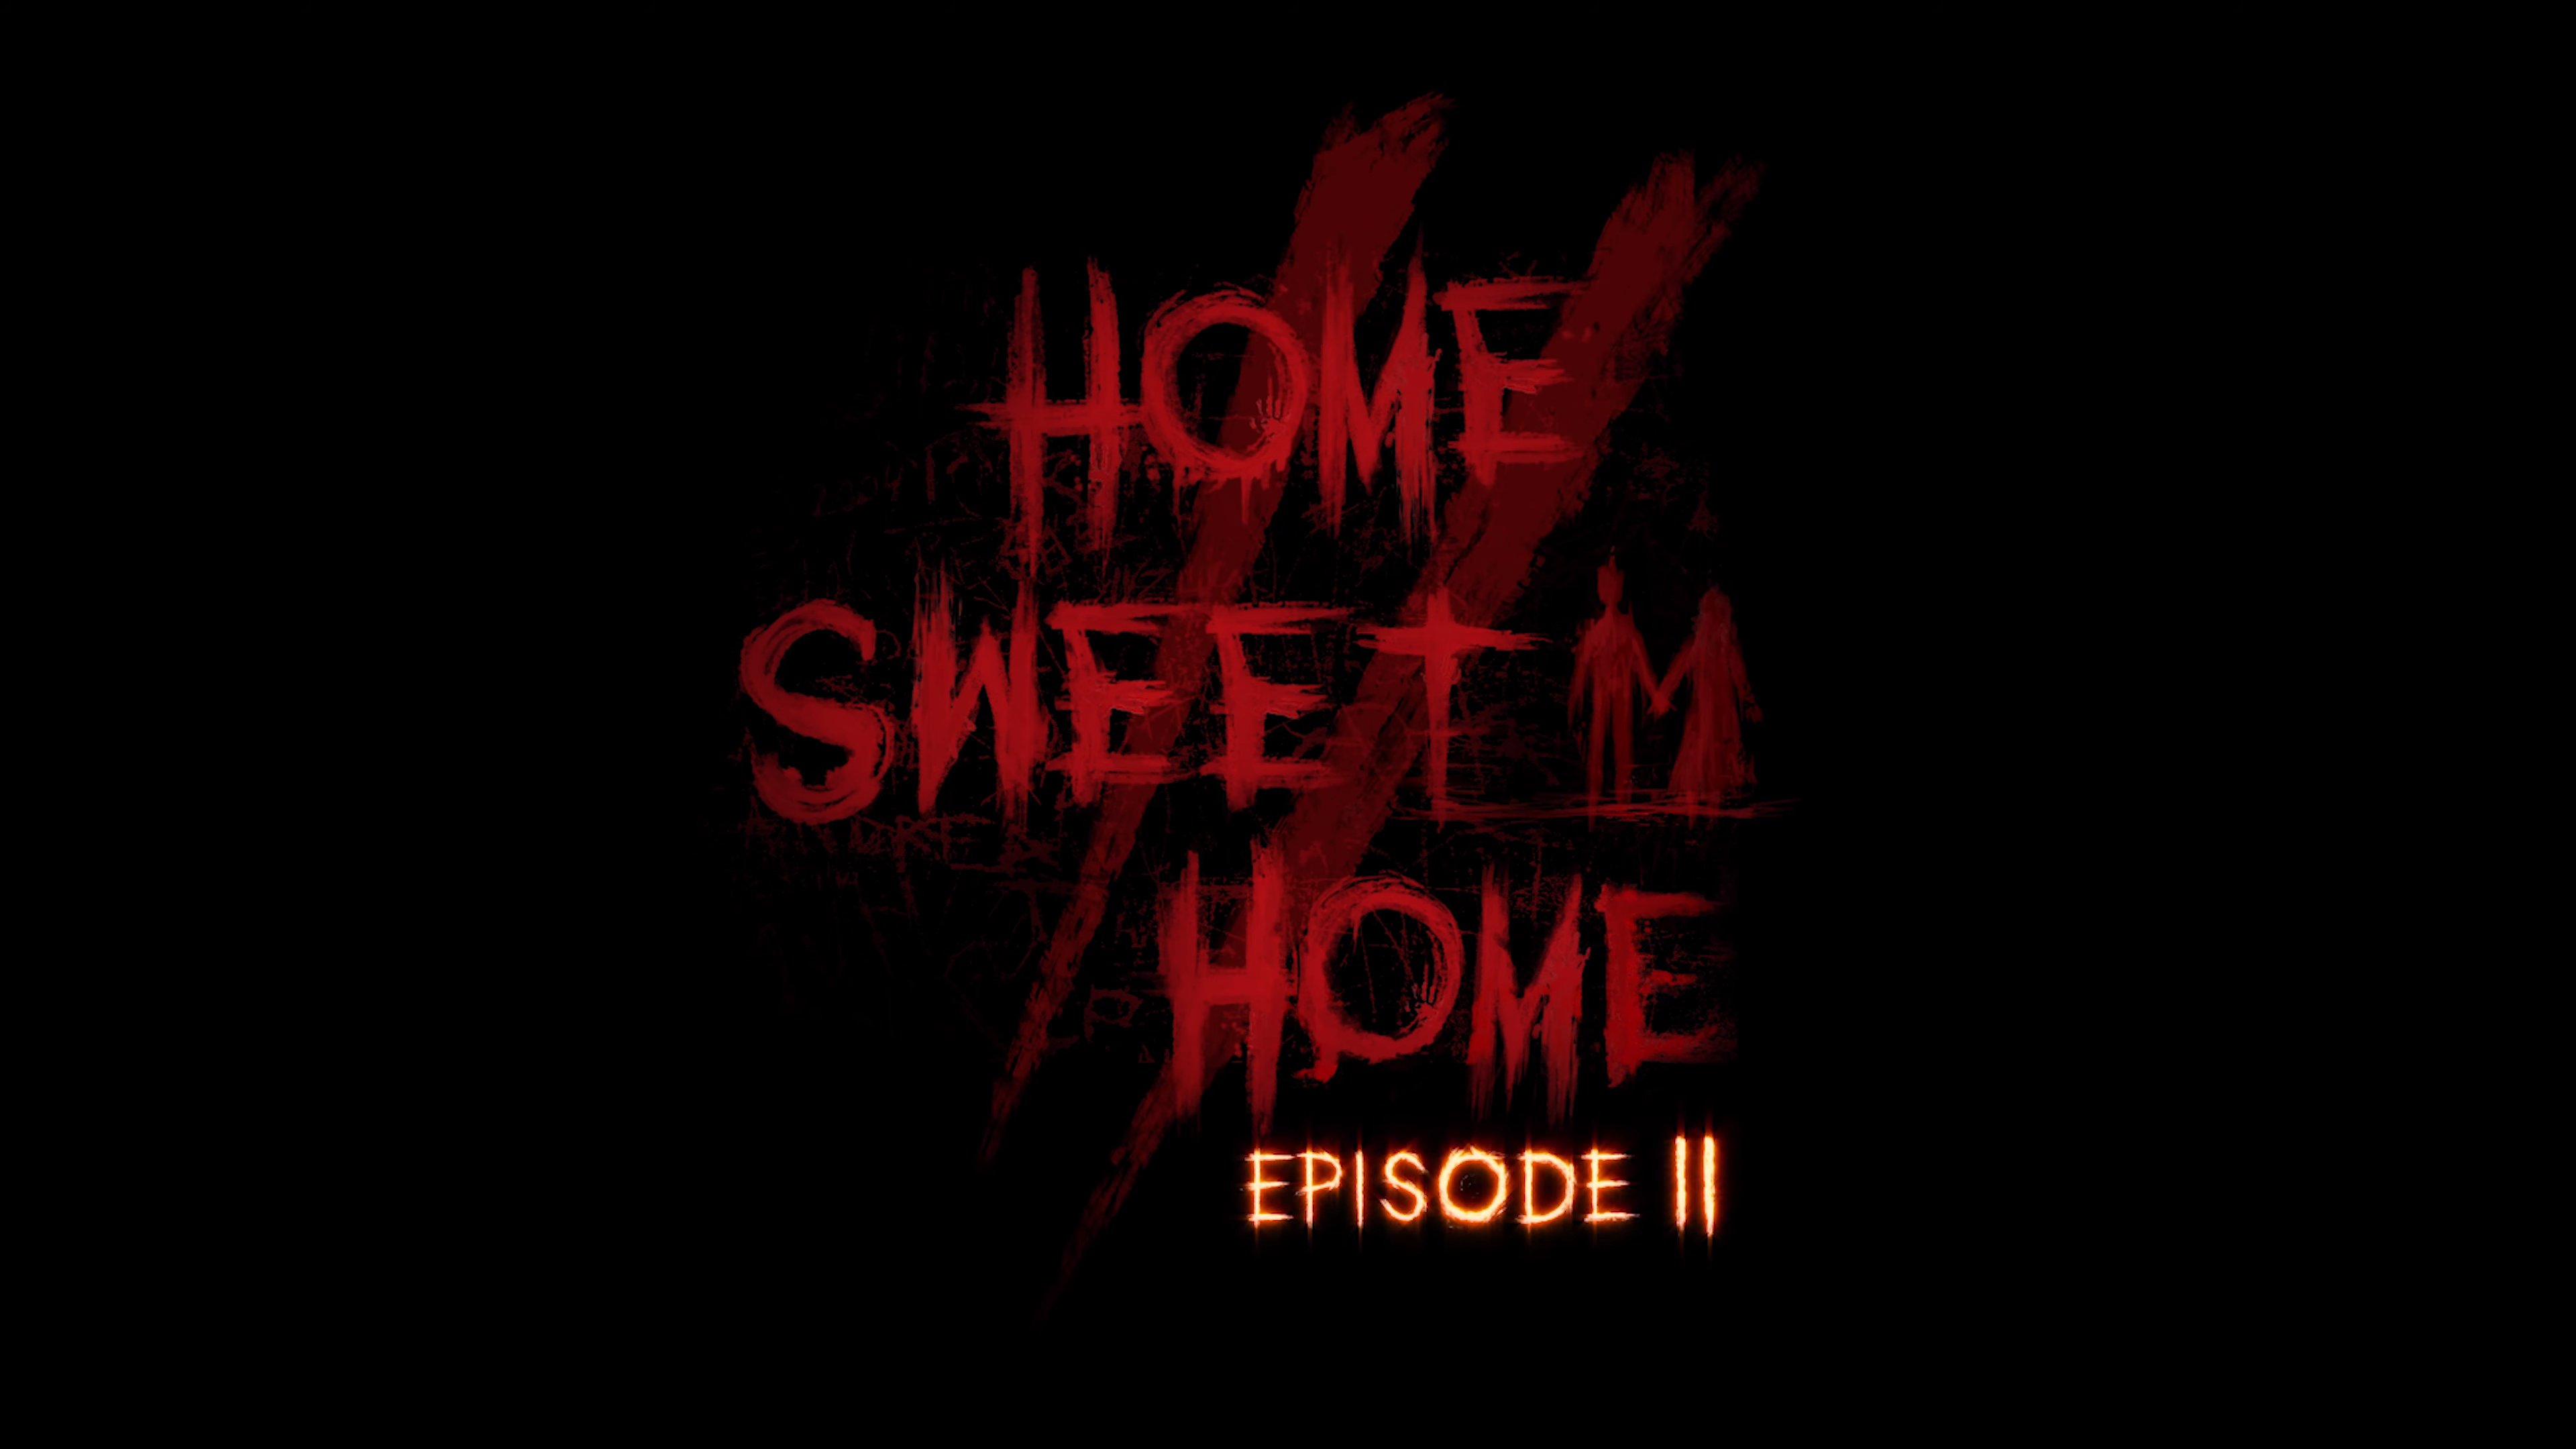 Home Sweet Home Ep. 2 Steam launch date set - GameSpace.com